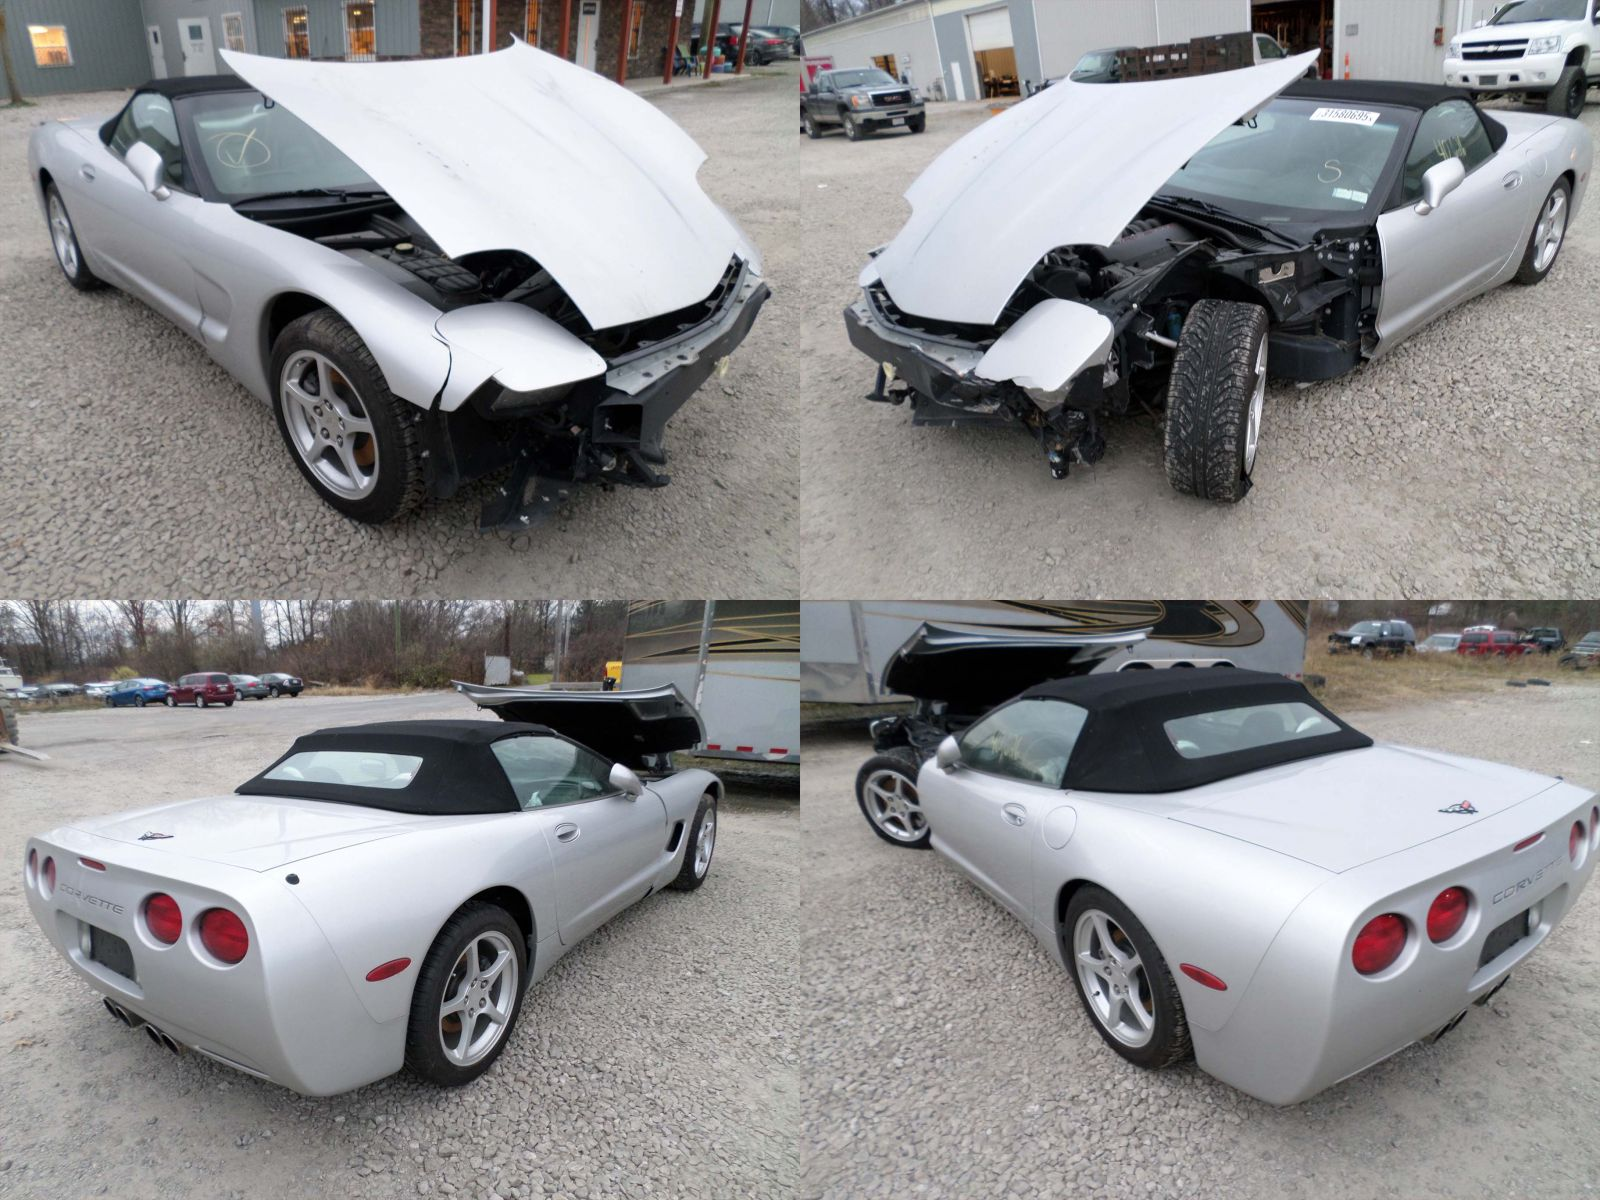 Corvette C5 For Sale >> 2002 Silver Chevrolet Corvette C5 Convertible - Cleveland ...